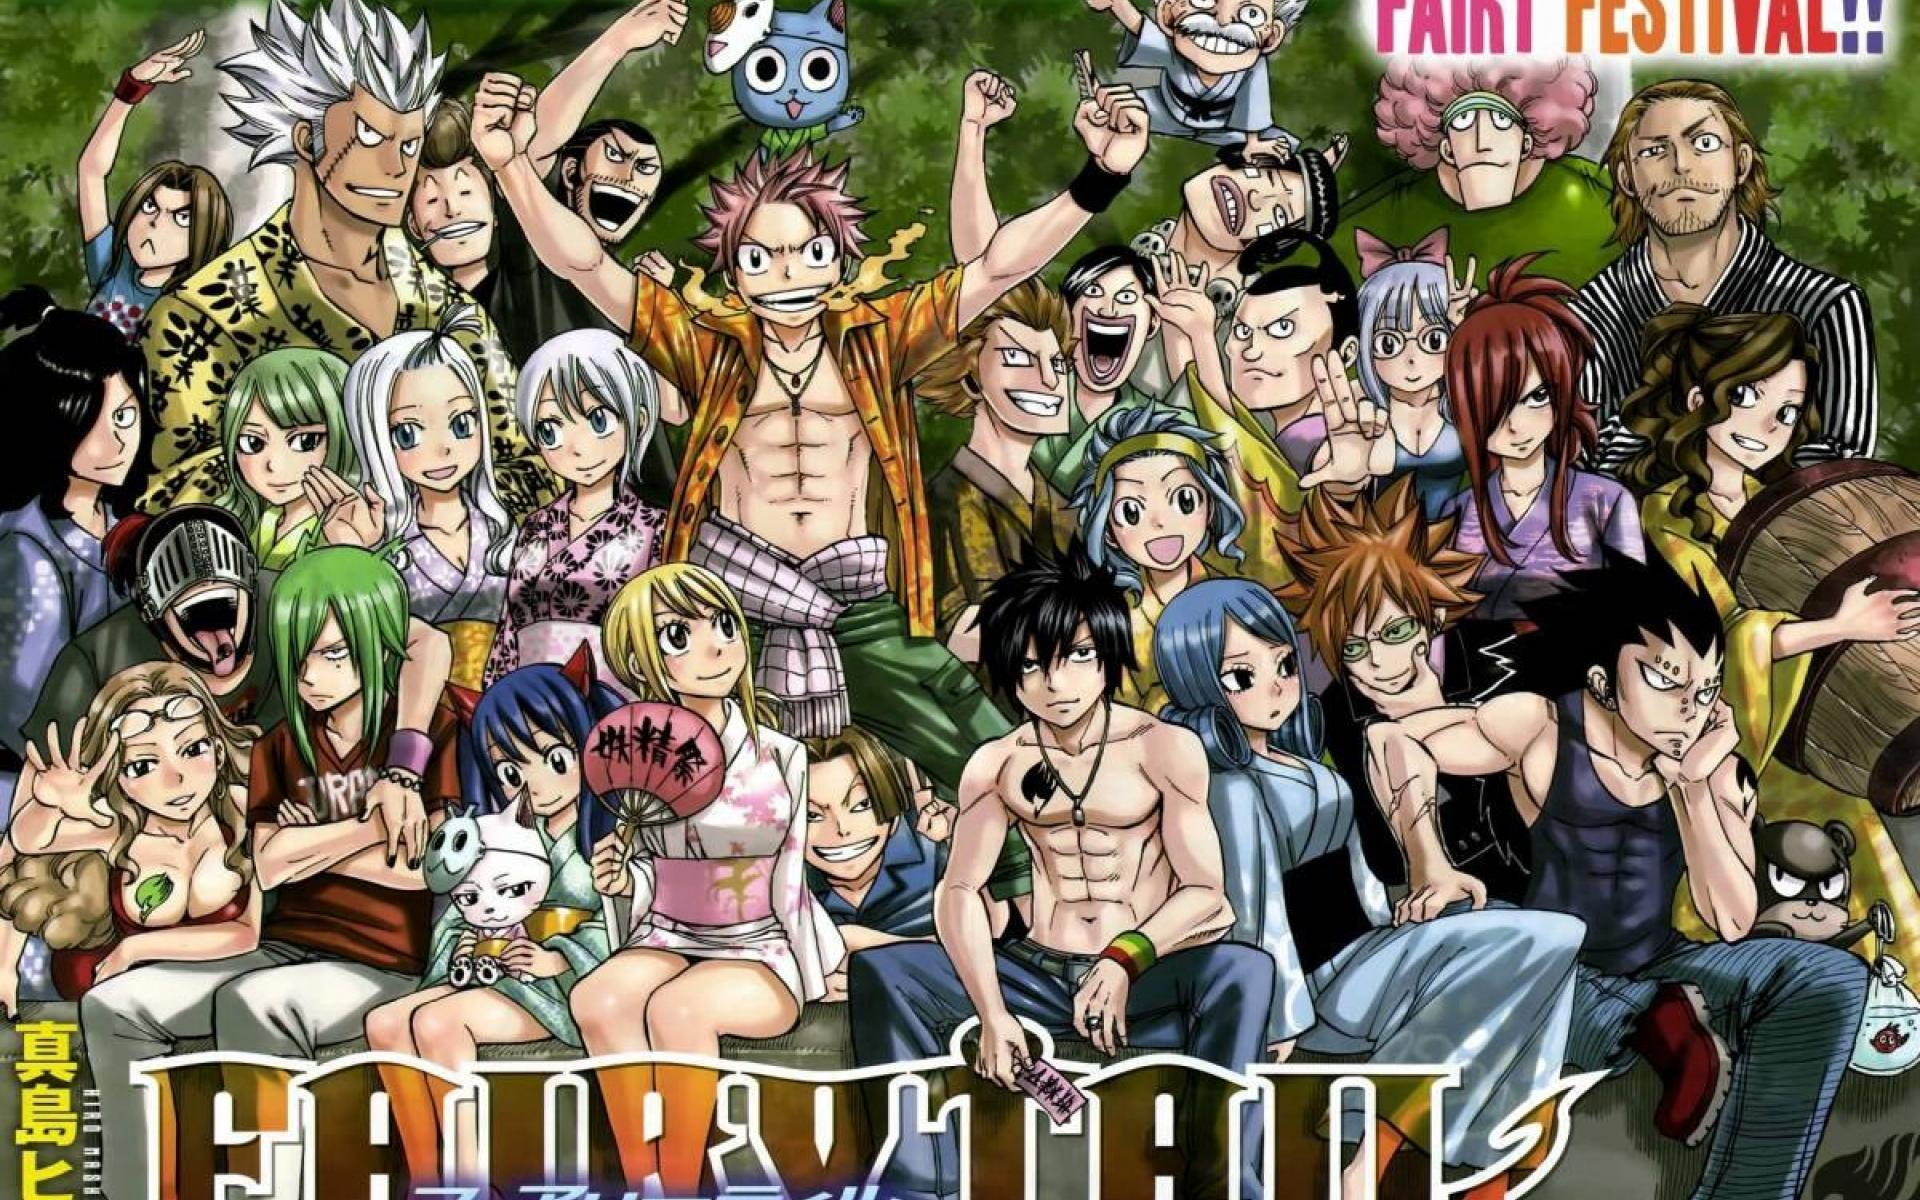 1592015 Fairy Tail wallpapers HD free wallpapers backgrounds image